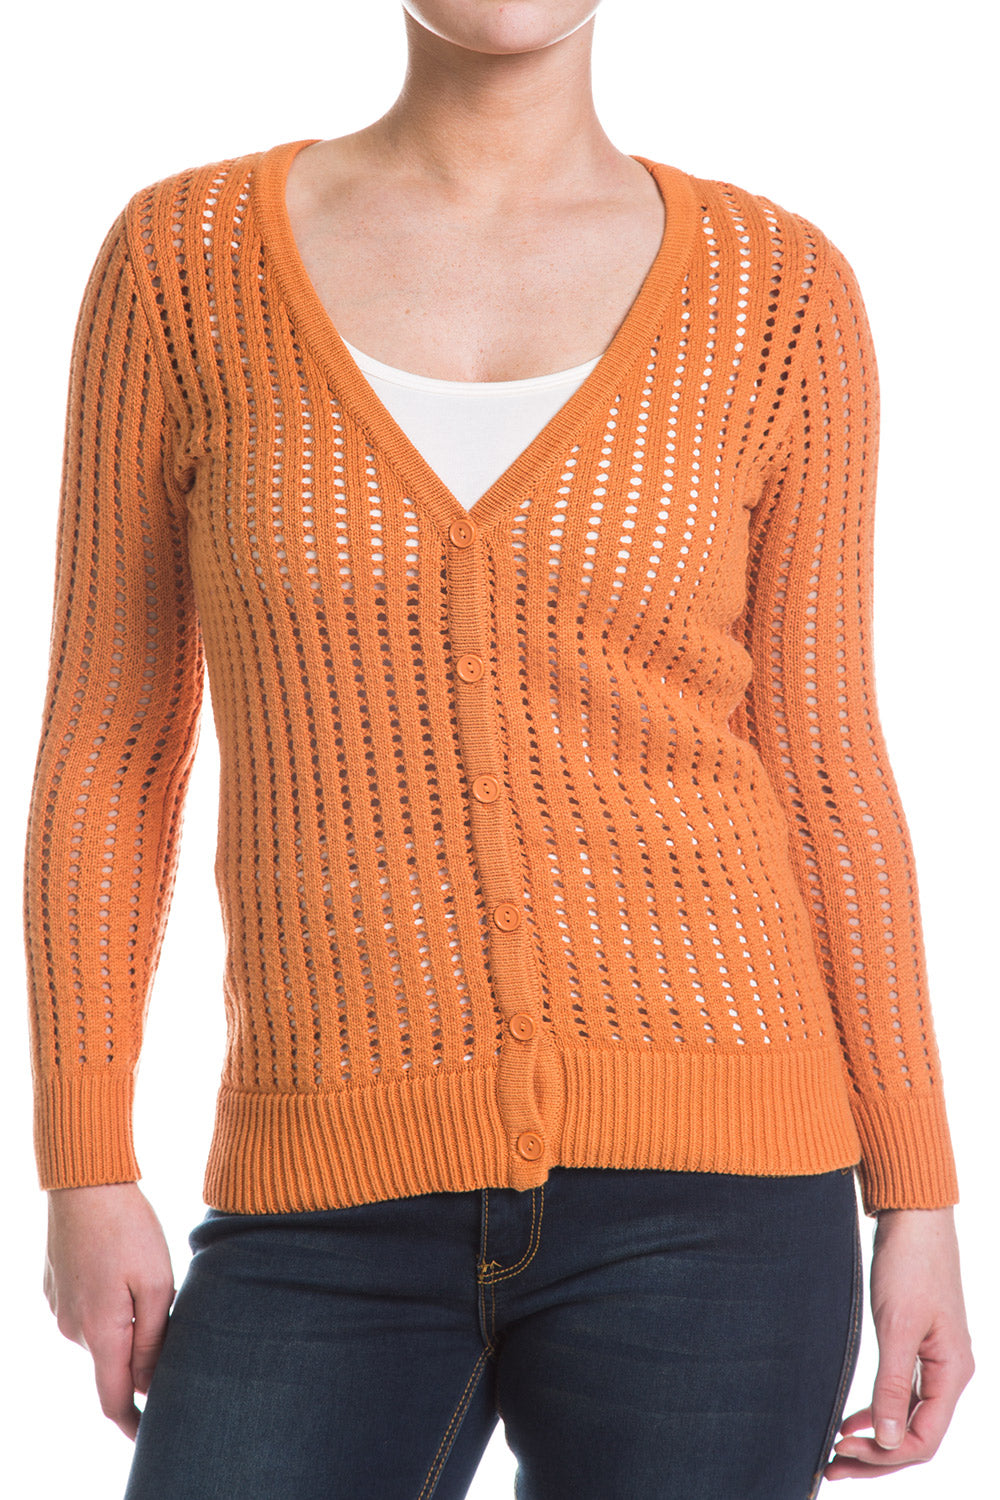 Type 3 Apricot Harvest Sweater